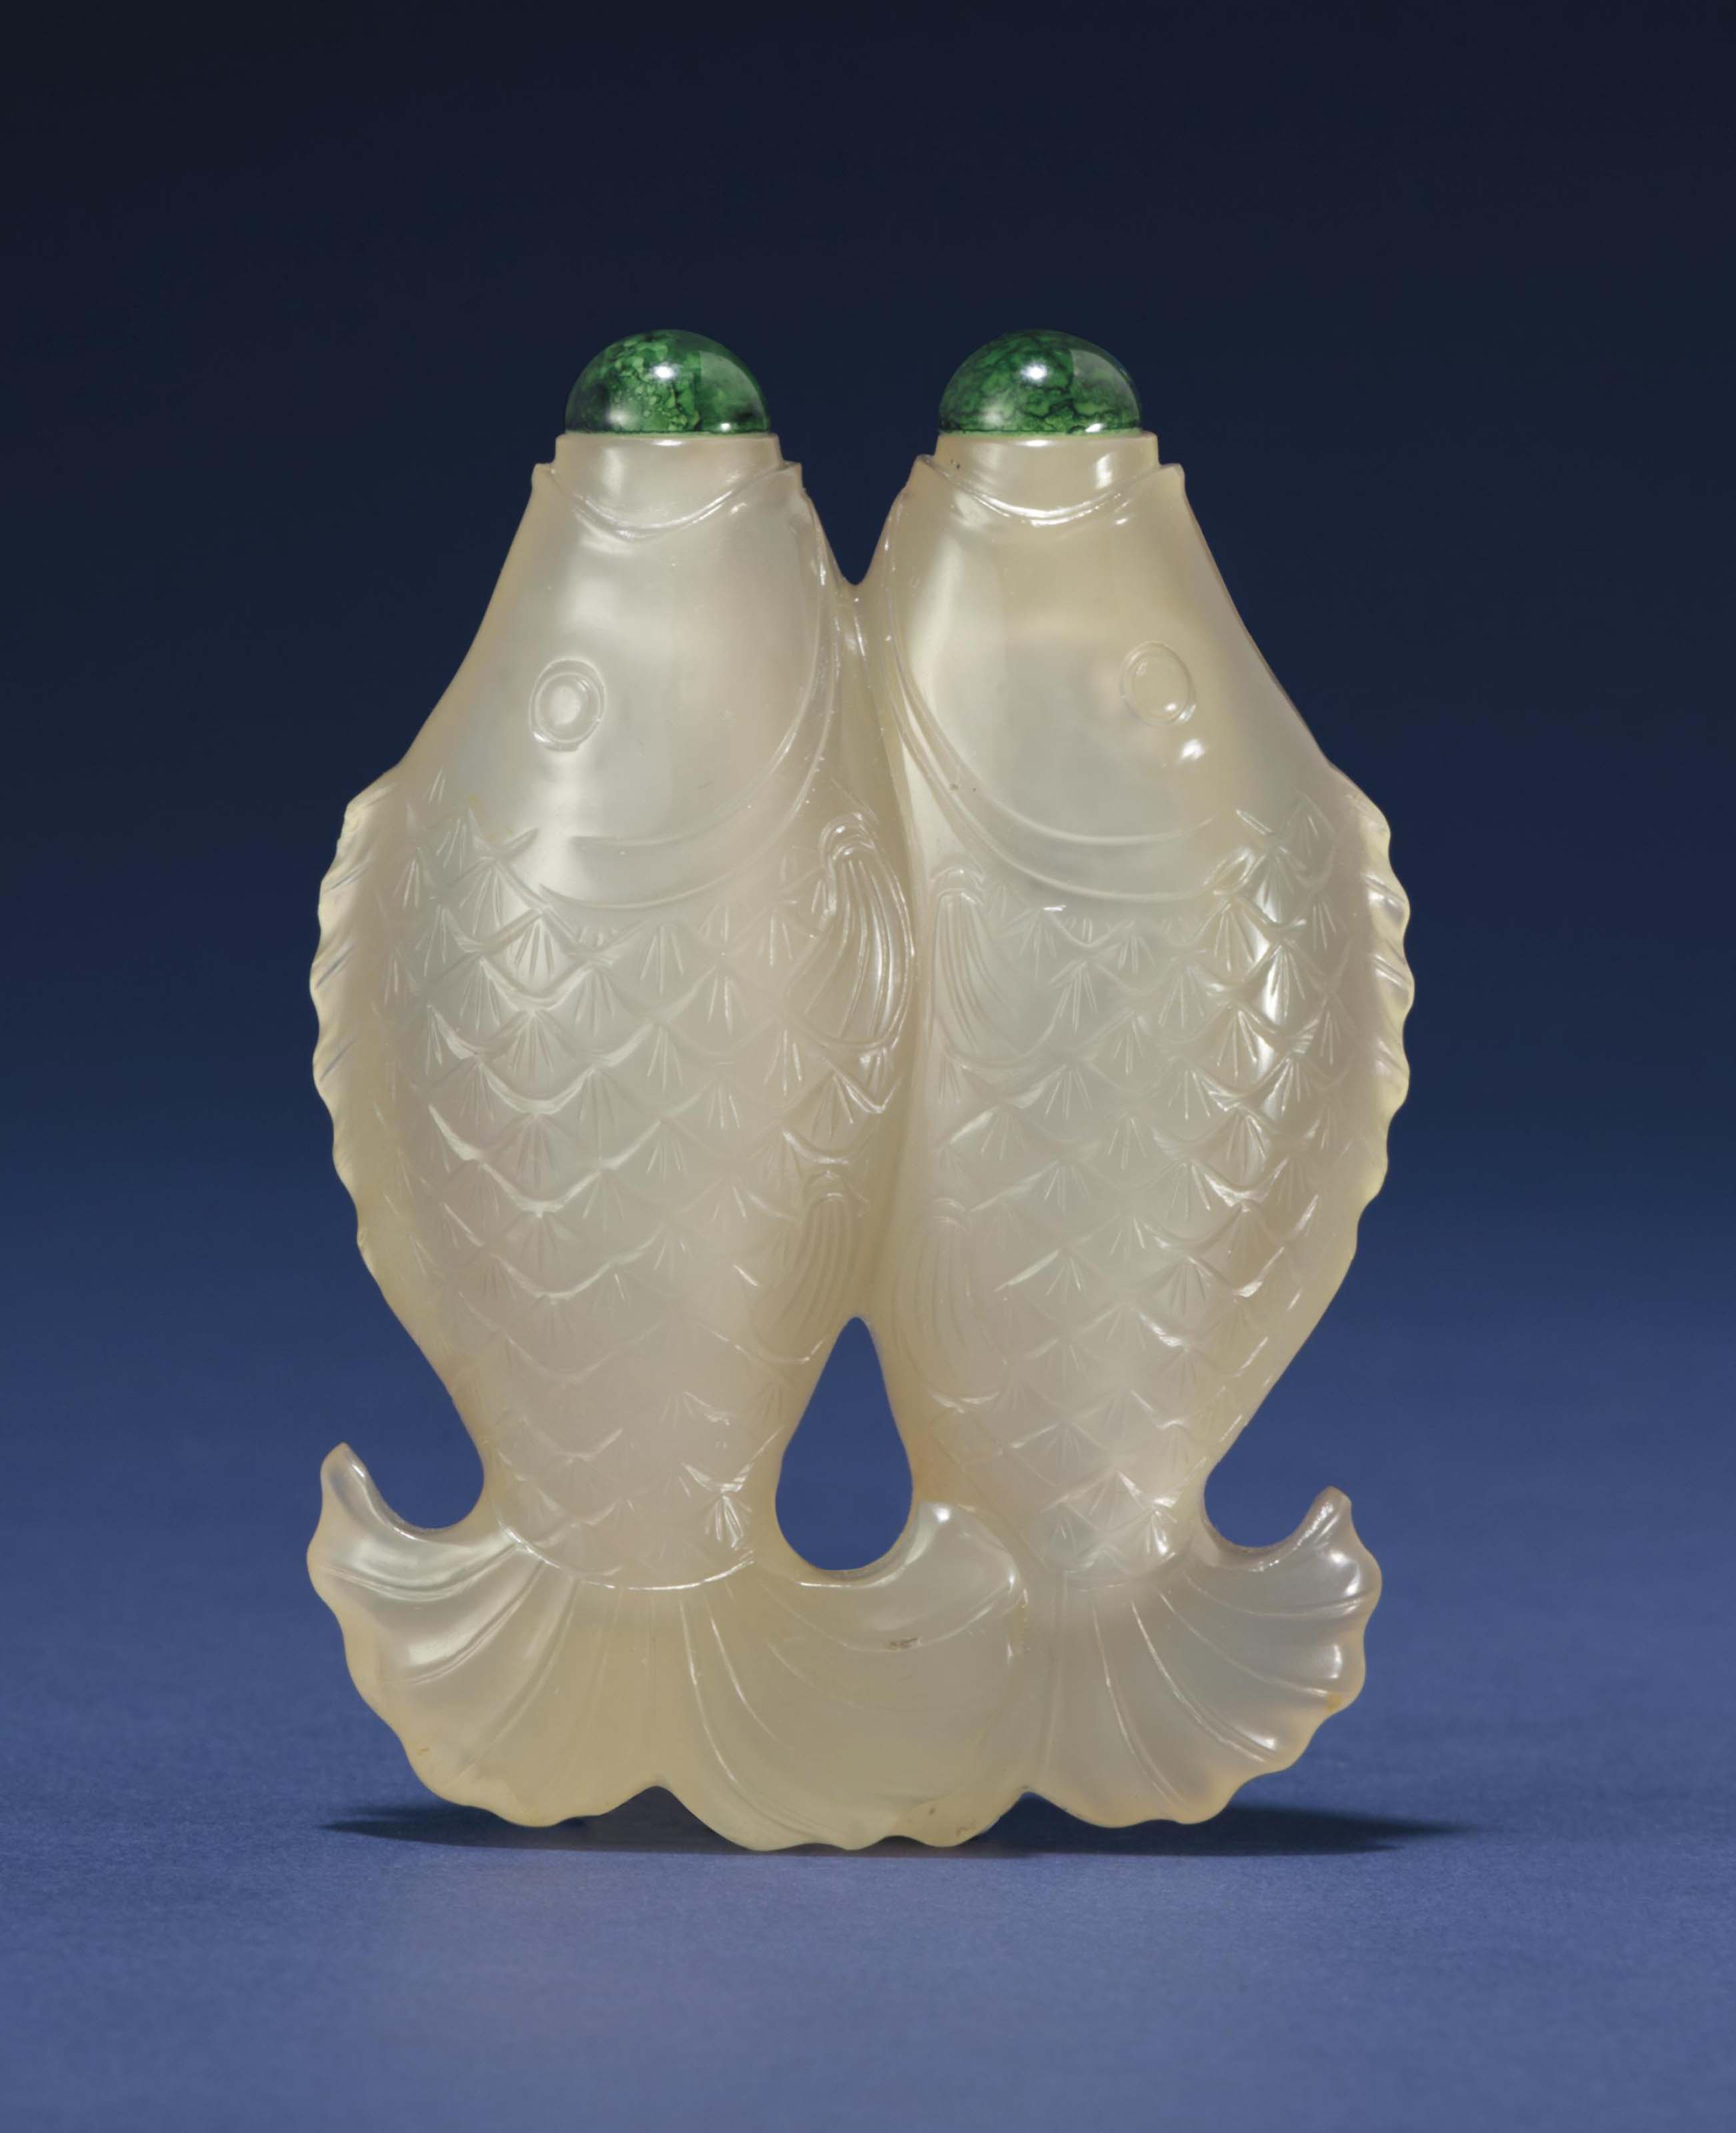 AN UNUSUAL AGATE DOUBLE-FISH S